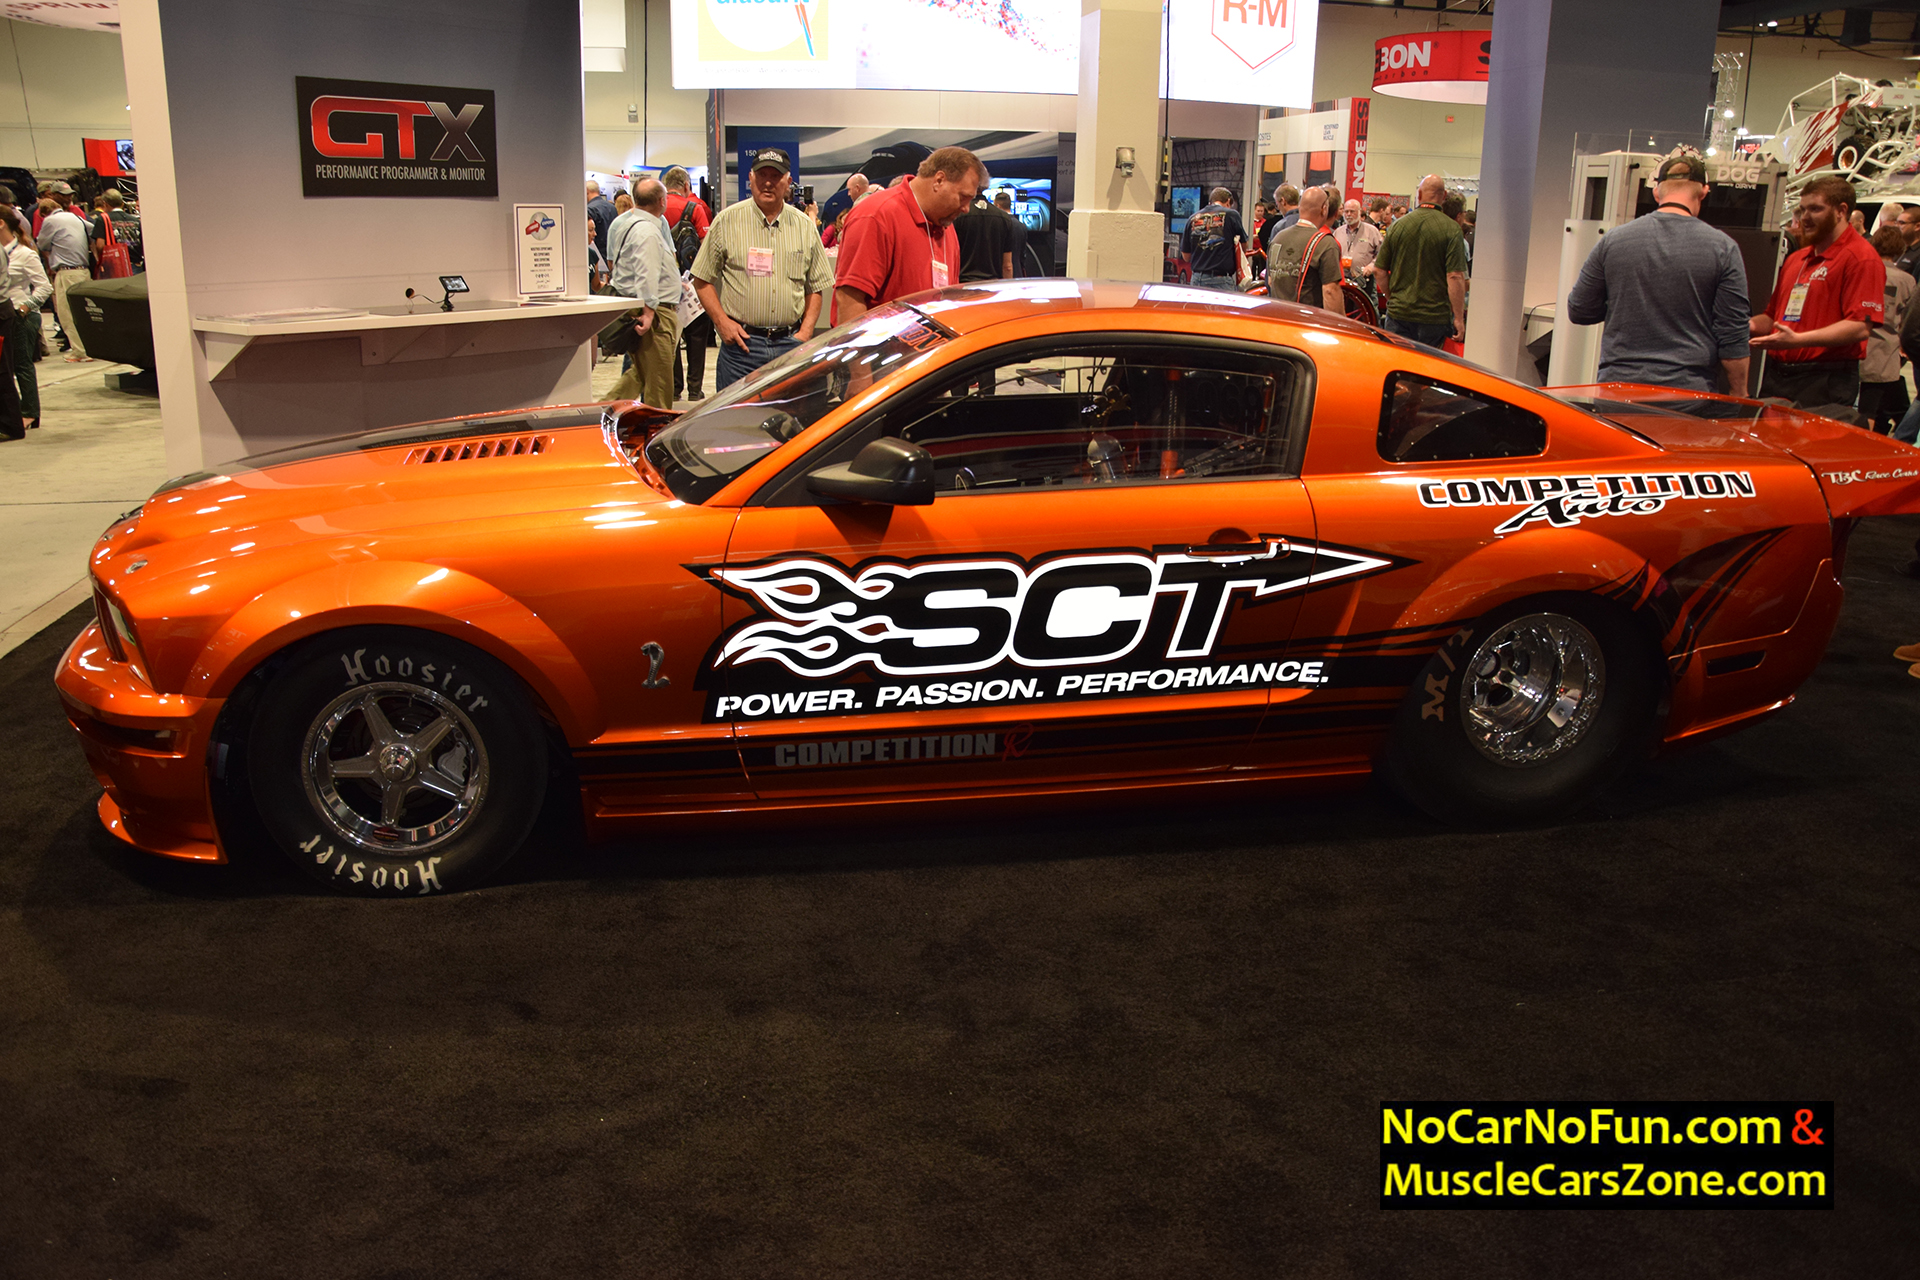 Ford Mustang Sct Competition Auto Tbc Drag Race Cars Sema Motor Show